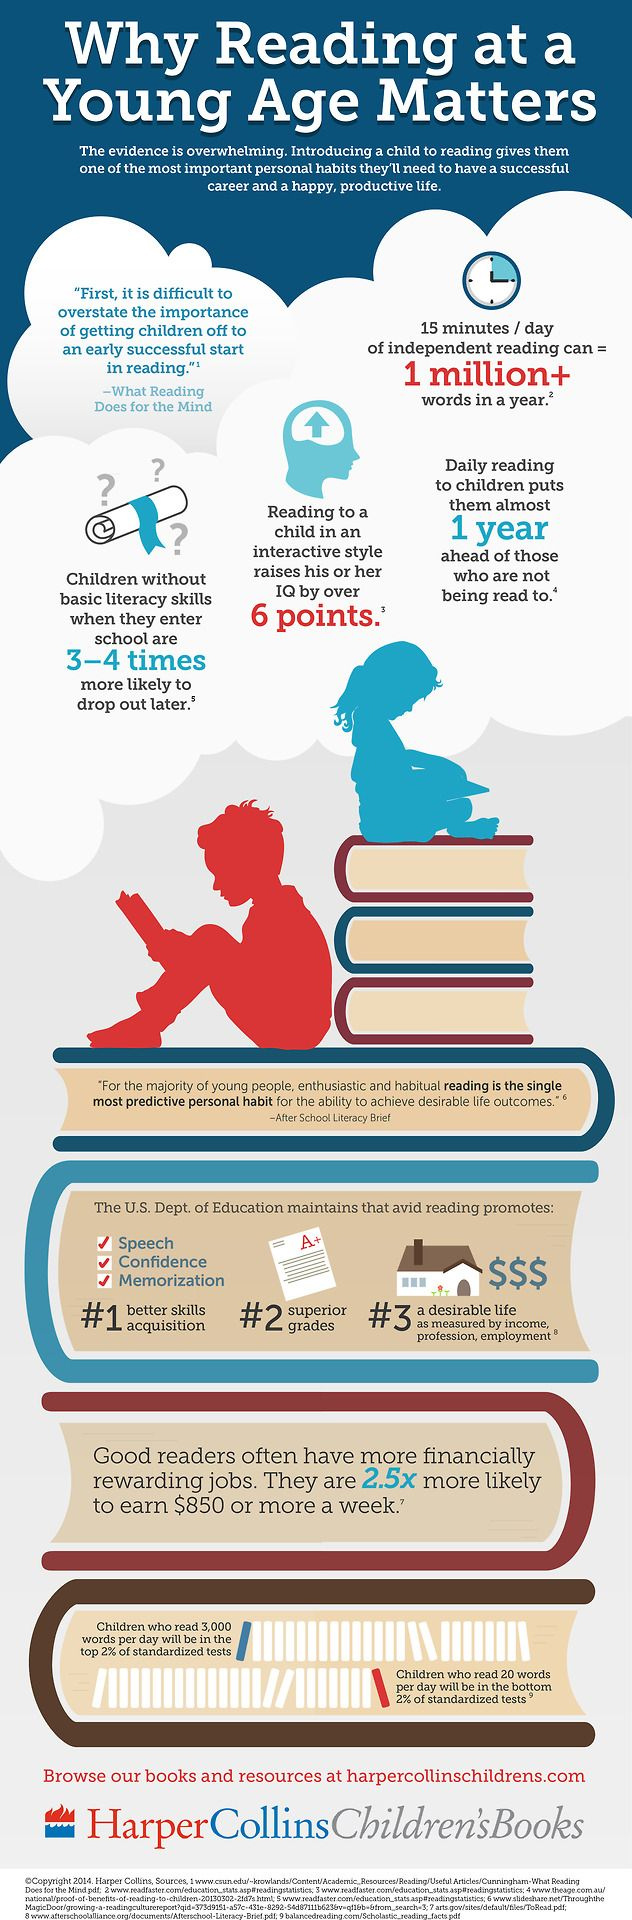 Why Reading at a Young Age Matters